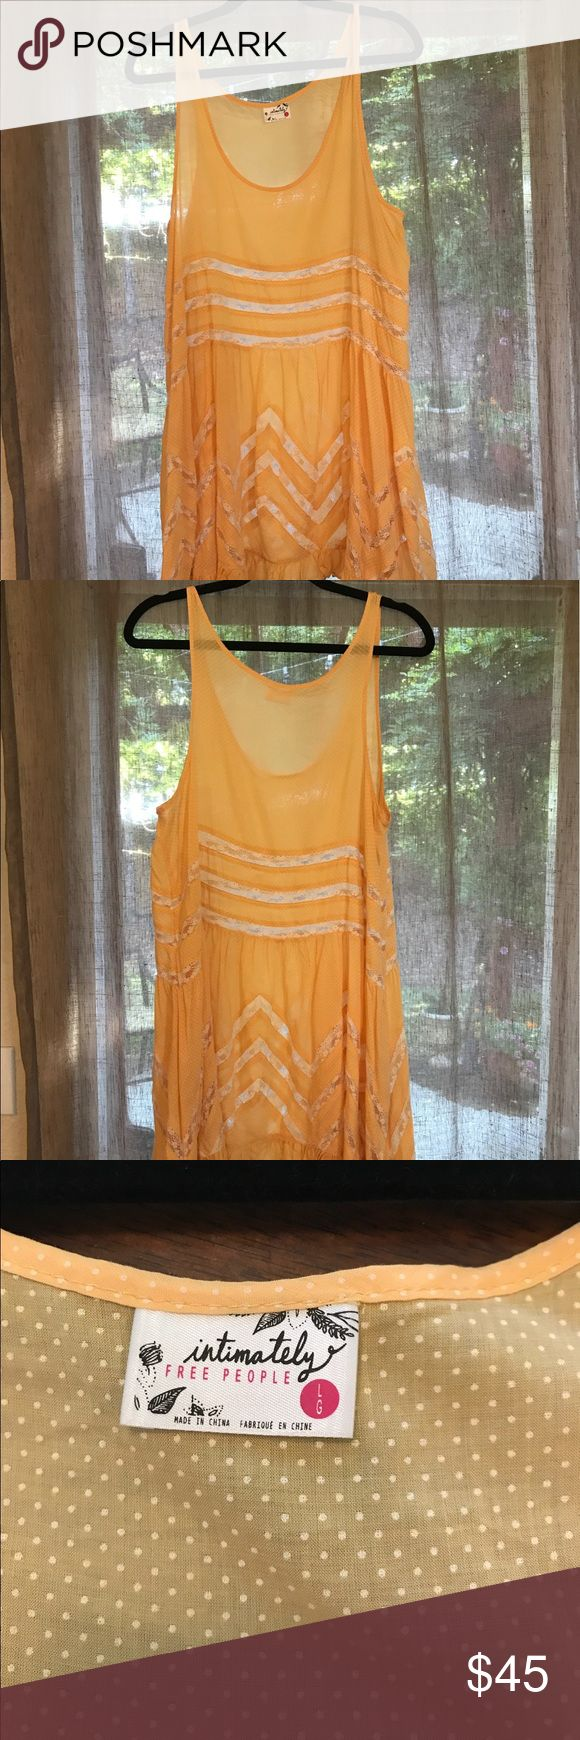 Free People Trapeze Dress Excellent Condition! Worn once! Size Large. Color is Mango with Cream colored Lace. Free People Dresses Midi